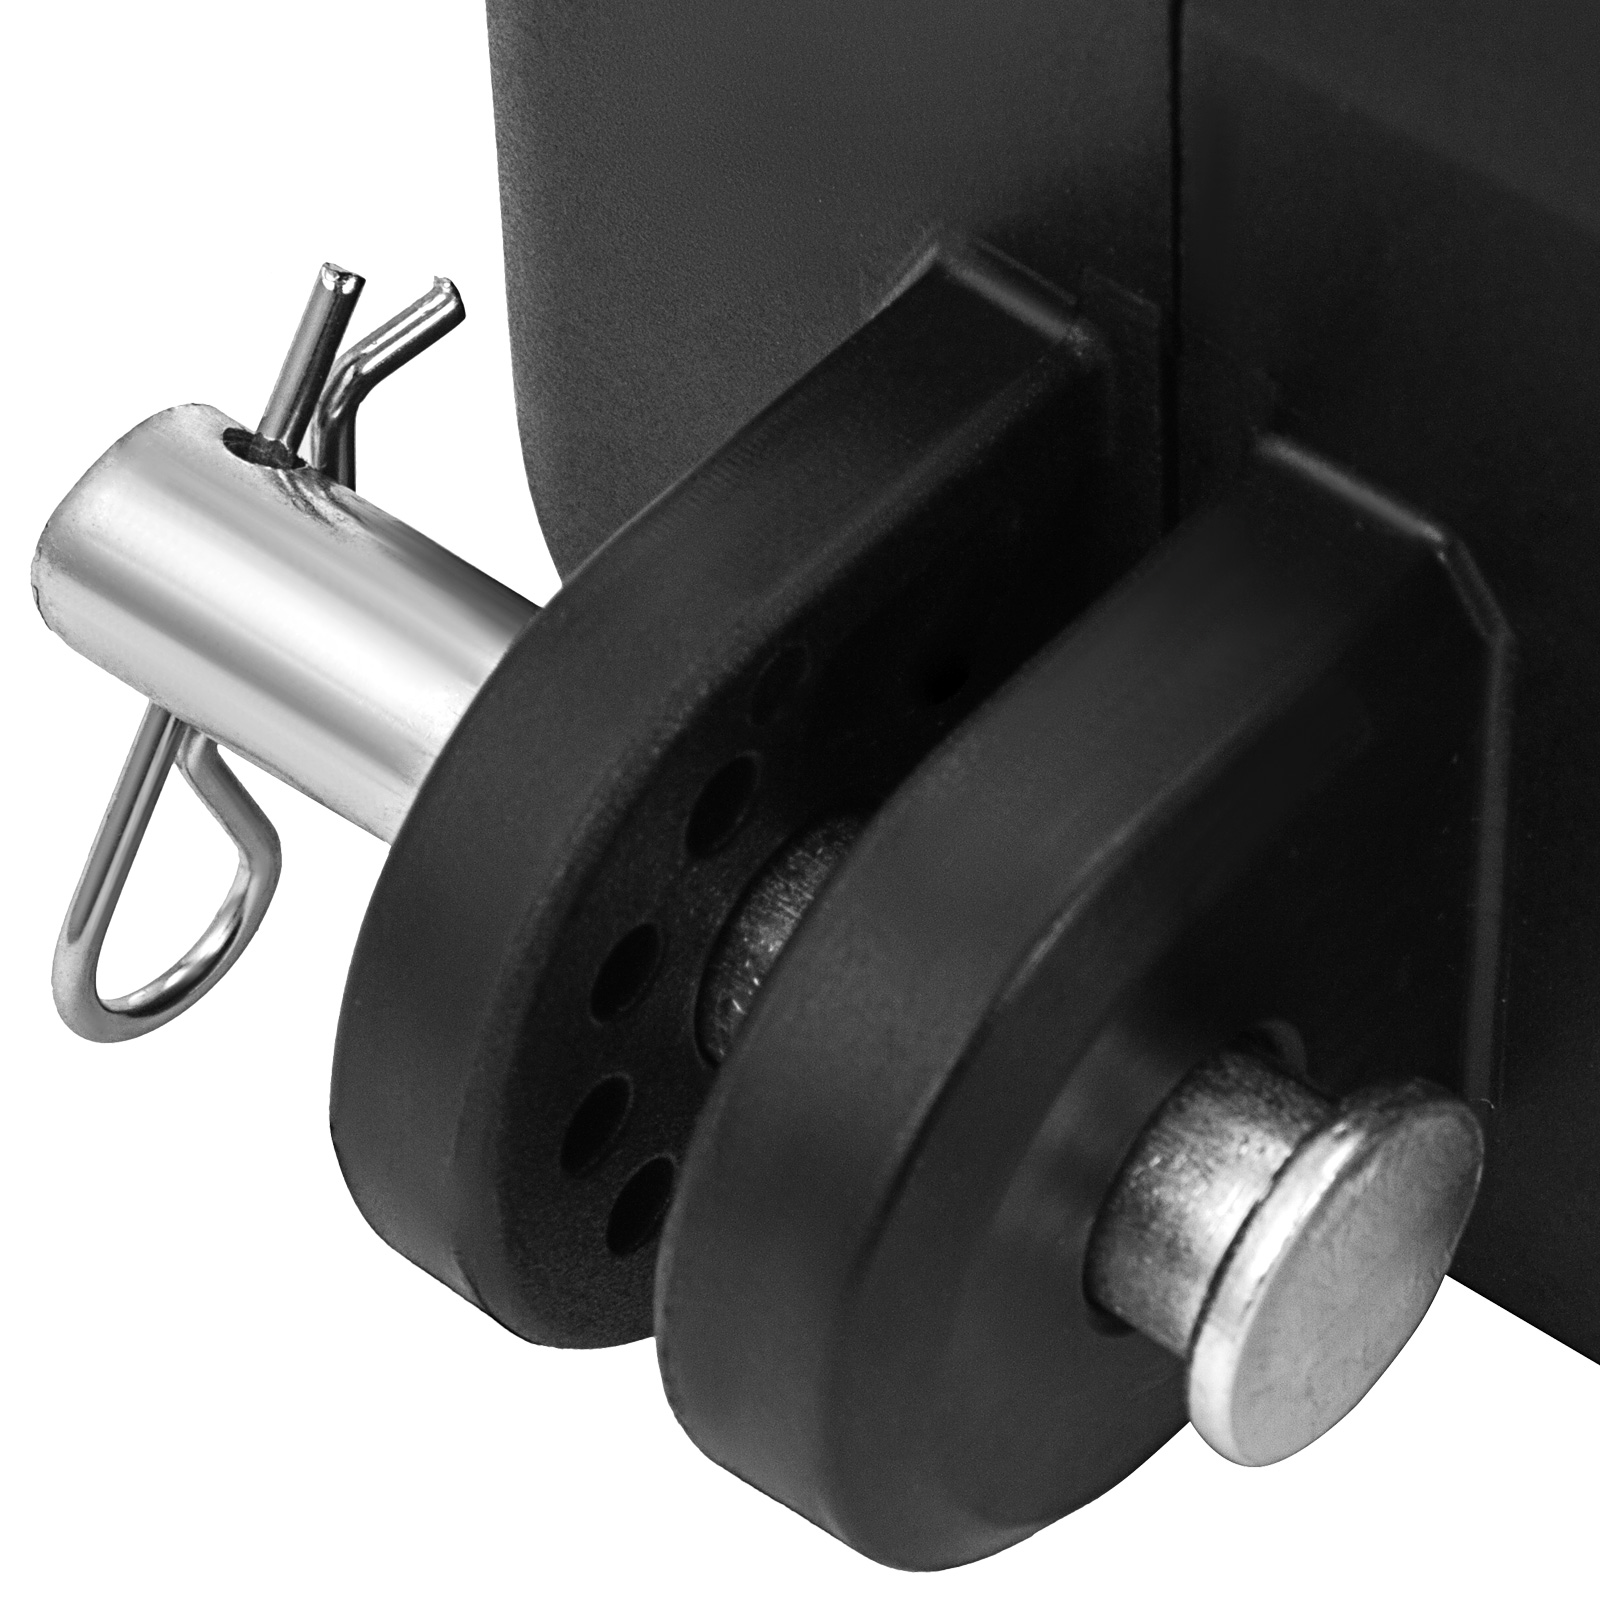 Power Recliner Motor Chair Replacement Switch Kit